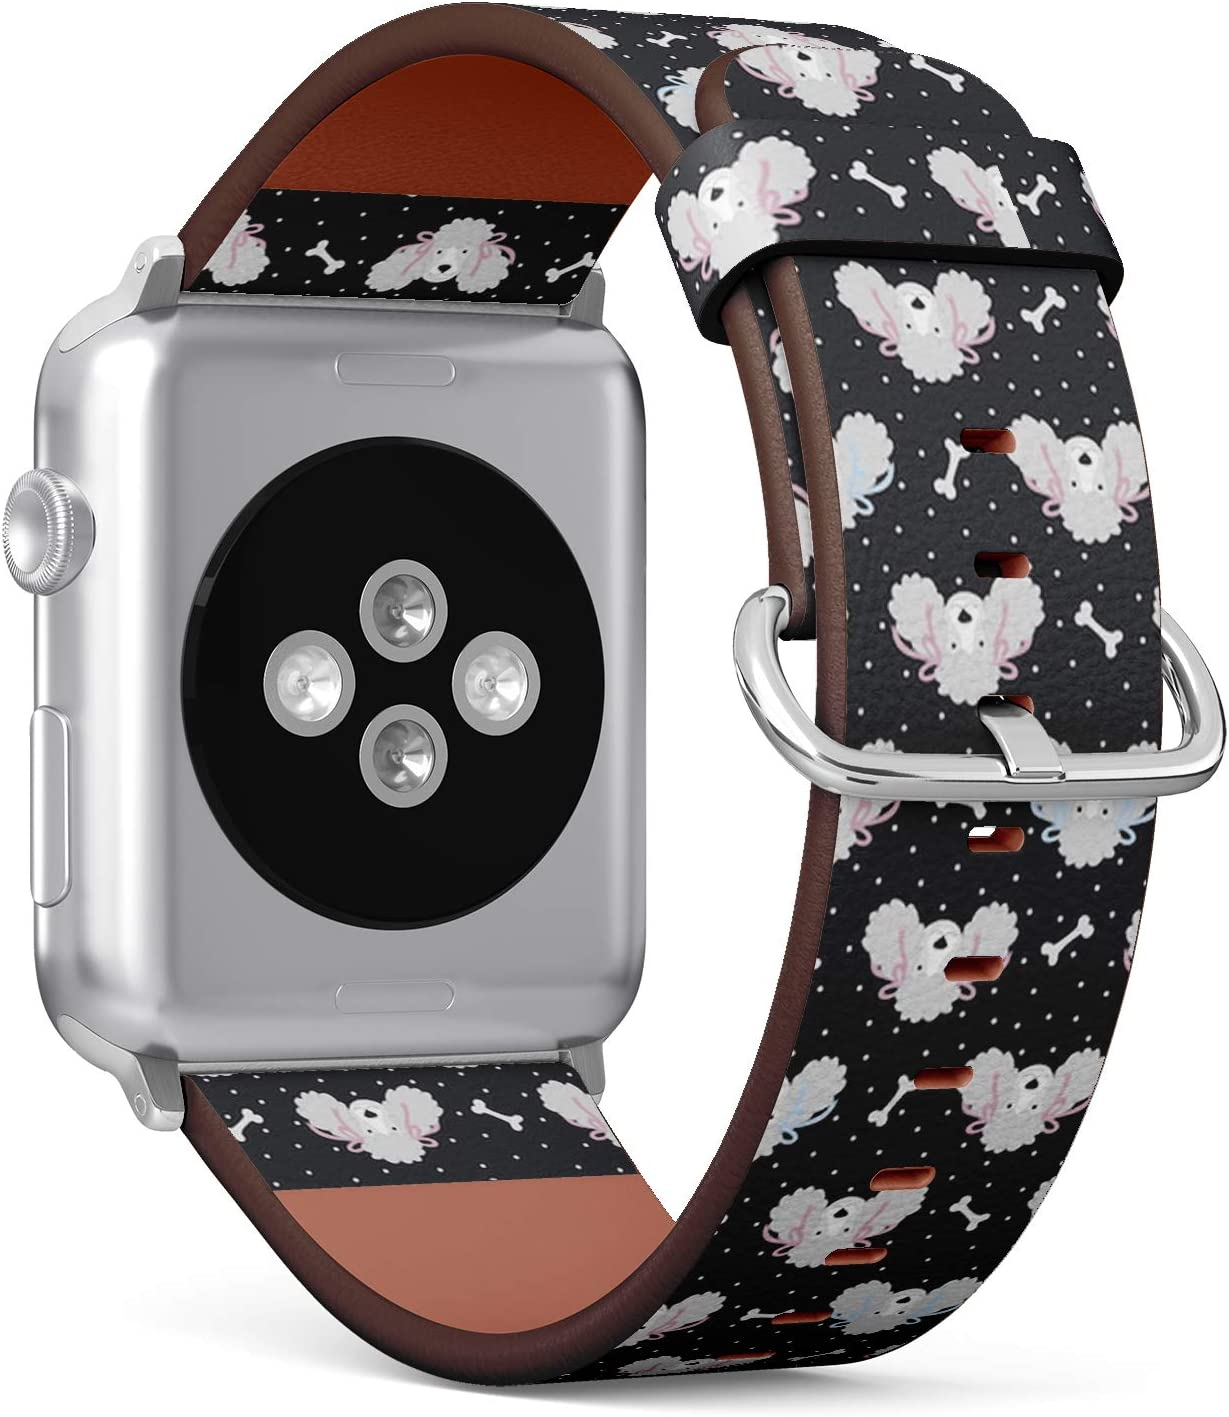 Compatible with Apple Watch Series 5, 4, 3, 2, 1 (Small Version 38/40 mm) Leather Wristband Bracelet Replacement Accessory Band + Adapters - Cute Poodles Bones